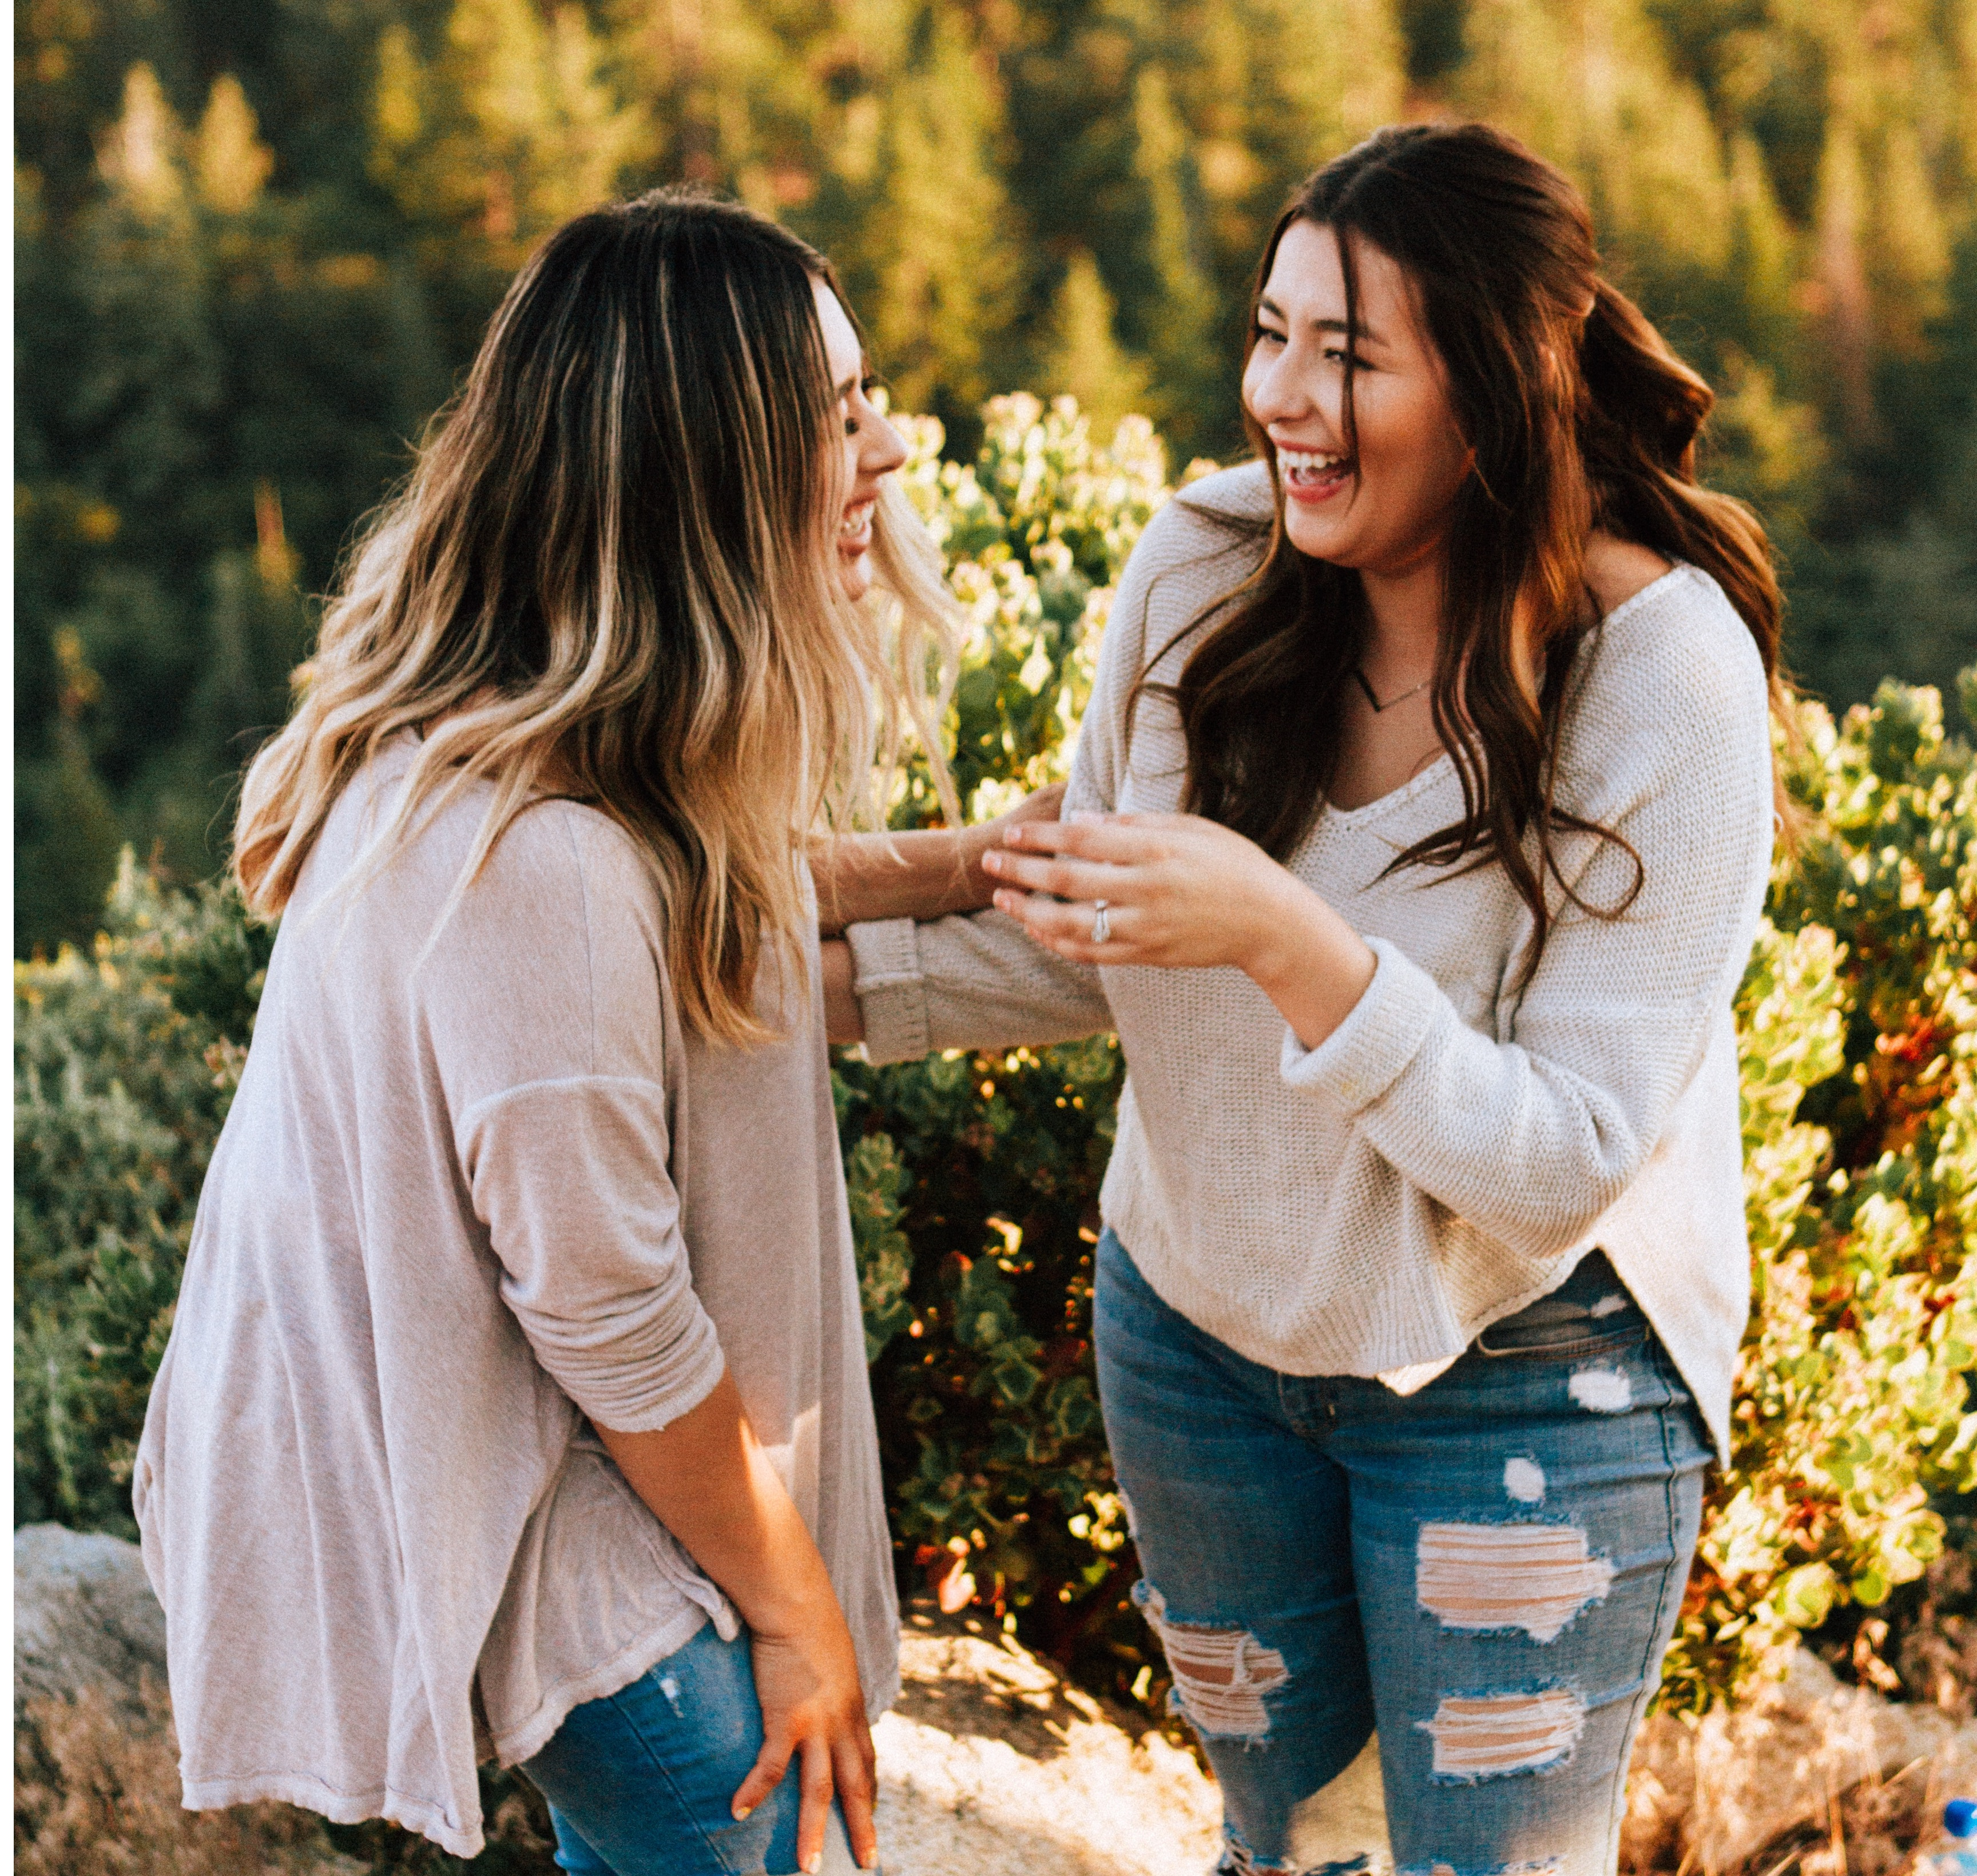 girls laughing and leaning towards each other by trees